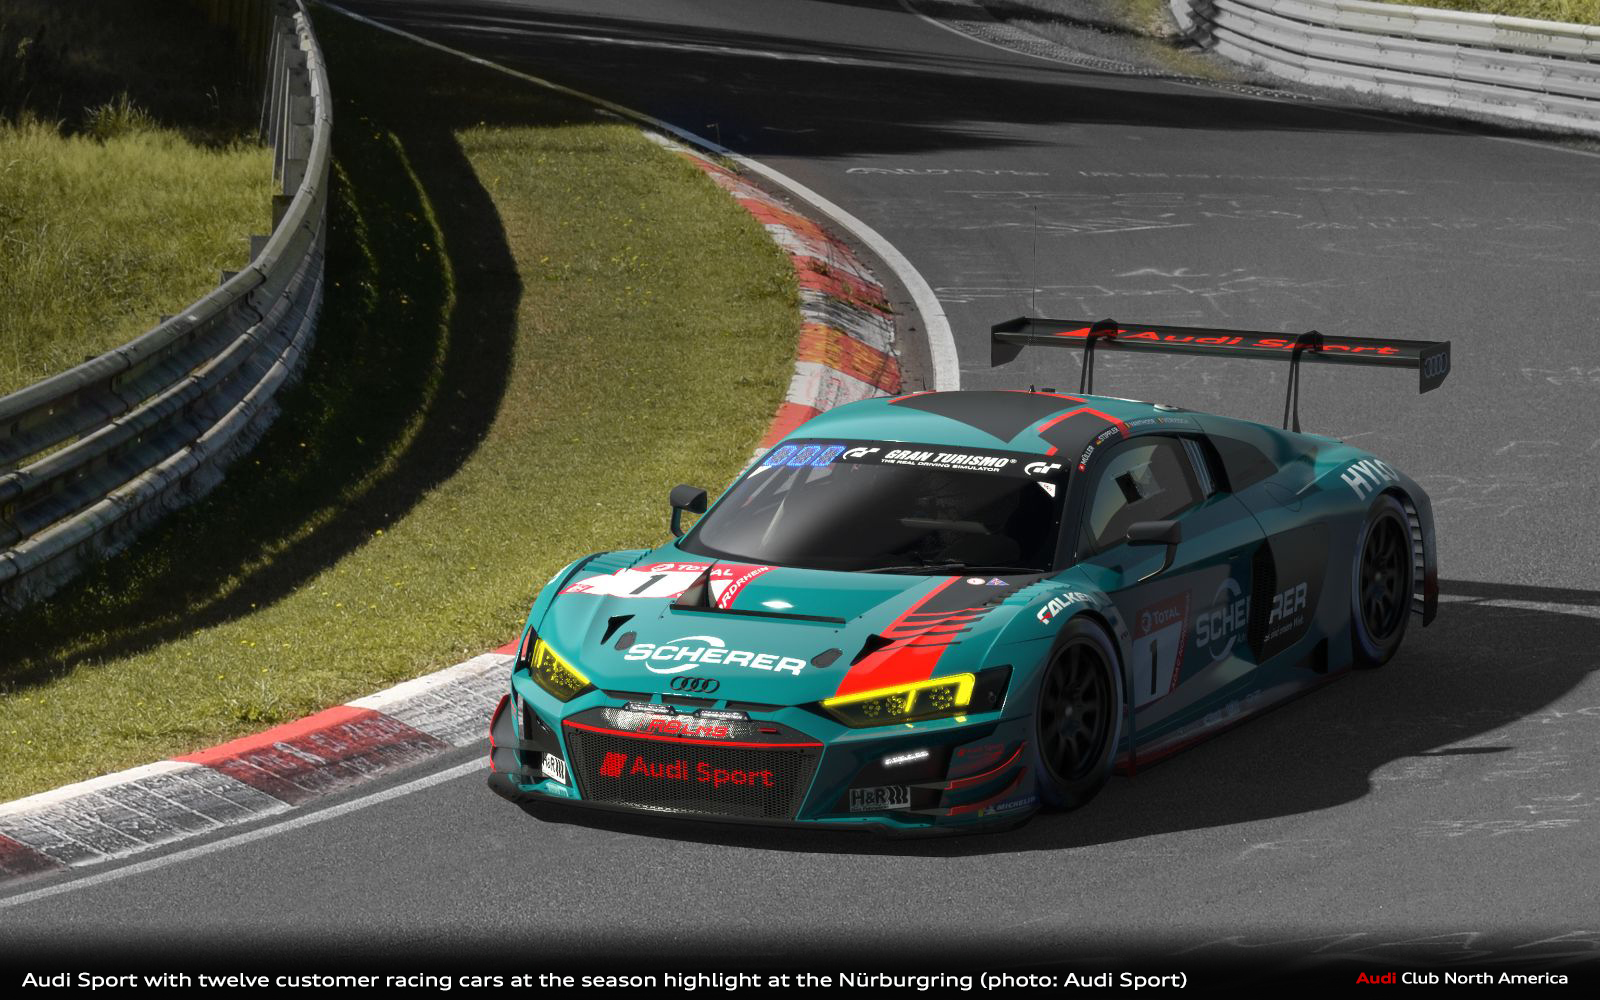 Audi Sport with twelve customer racing cars at the season highlight at the Nürburgring